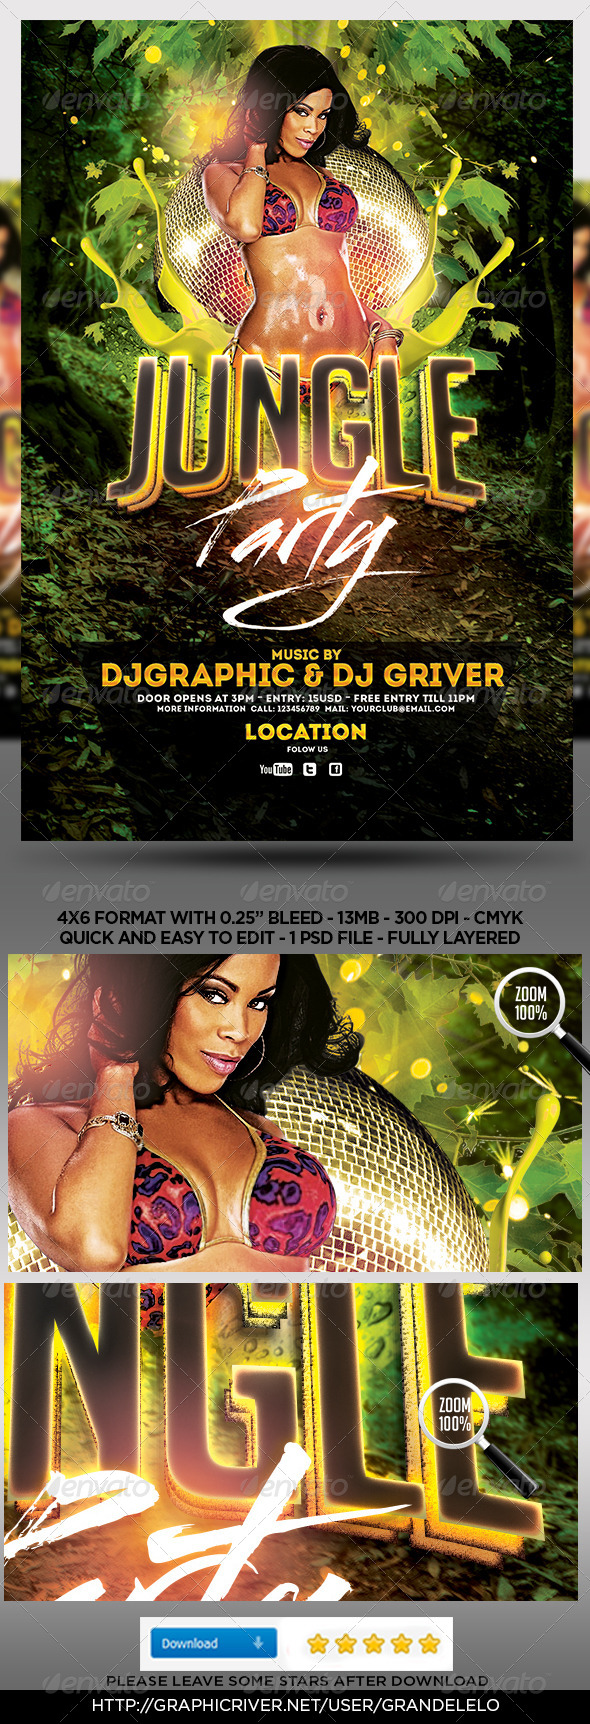 GraphicRiver Jungle party Flyer Template 5074098